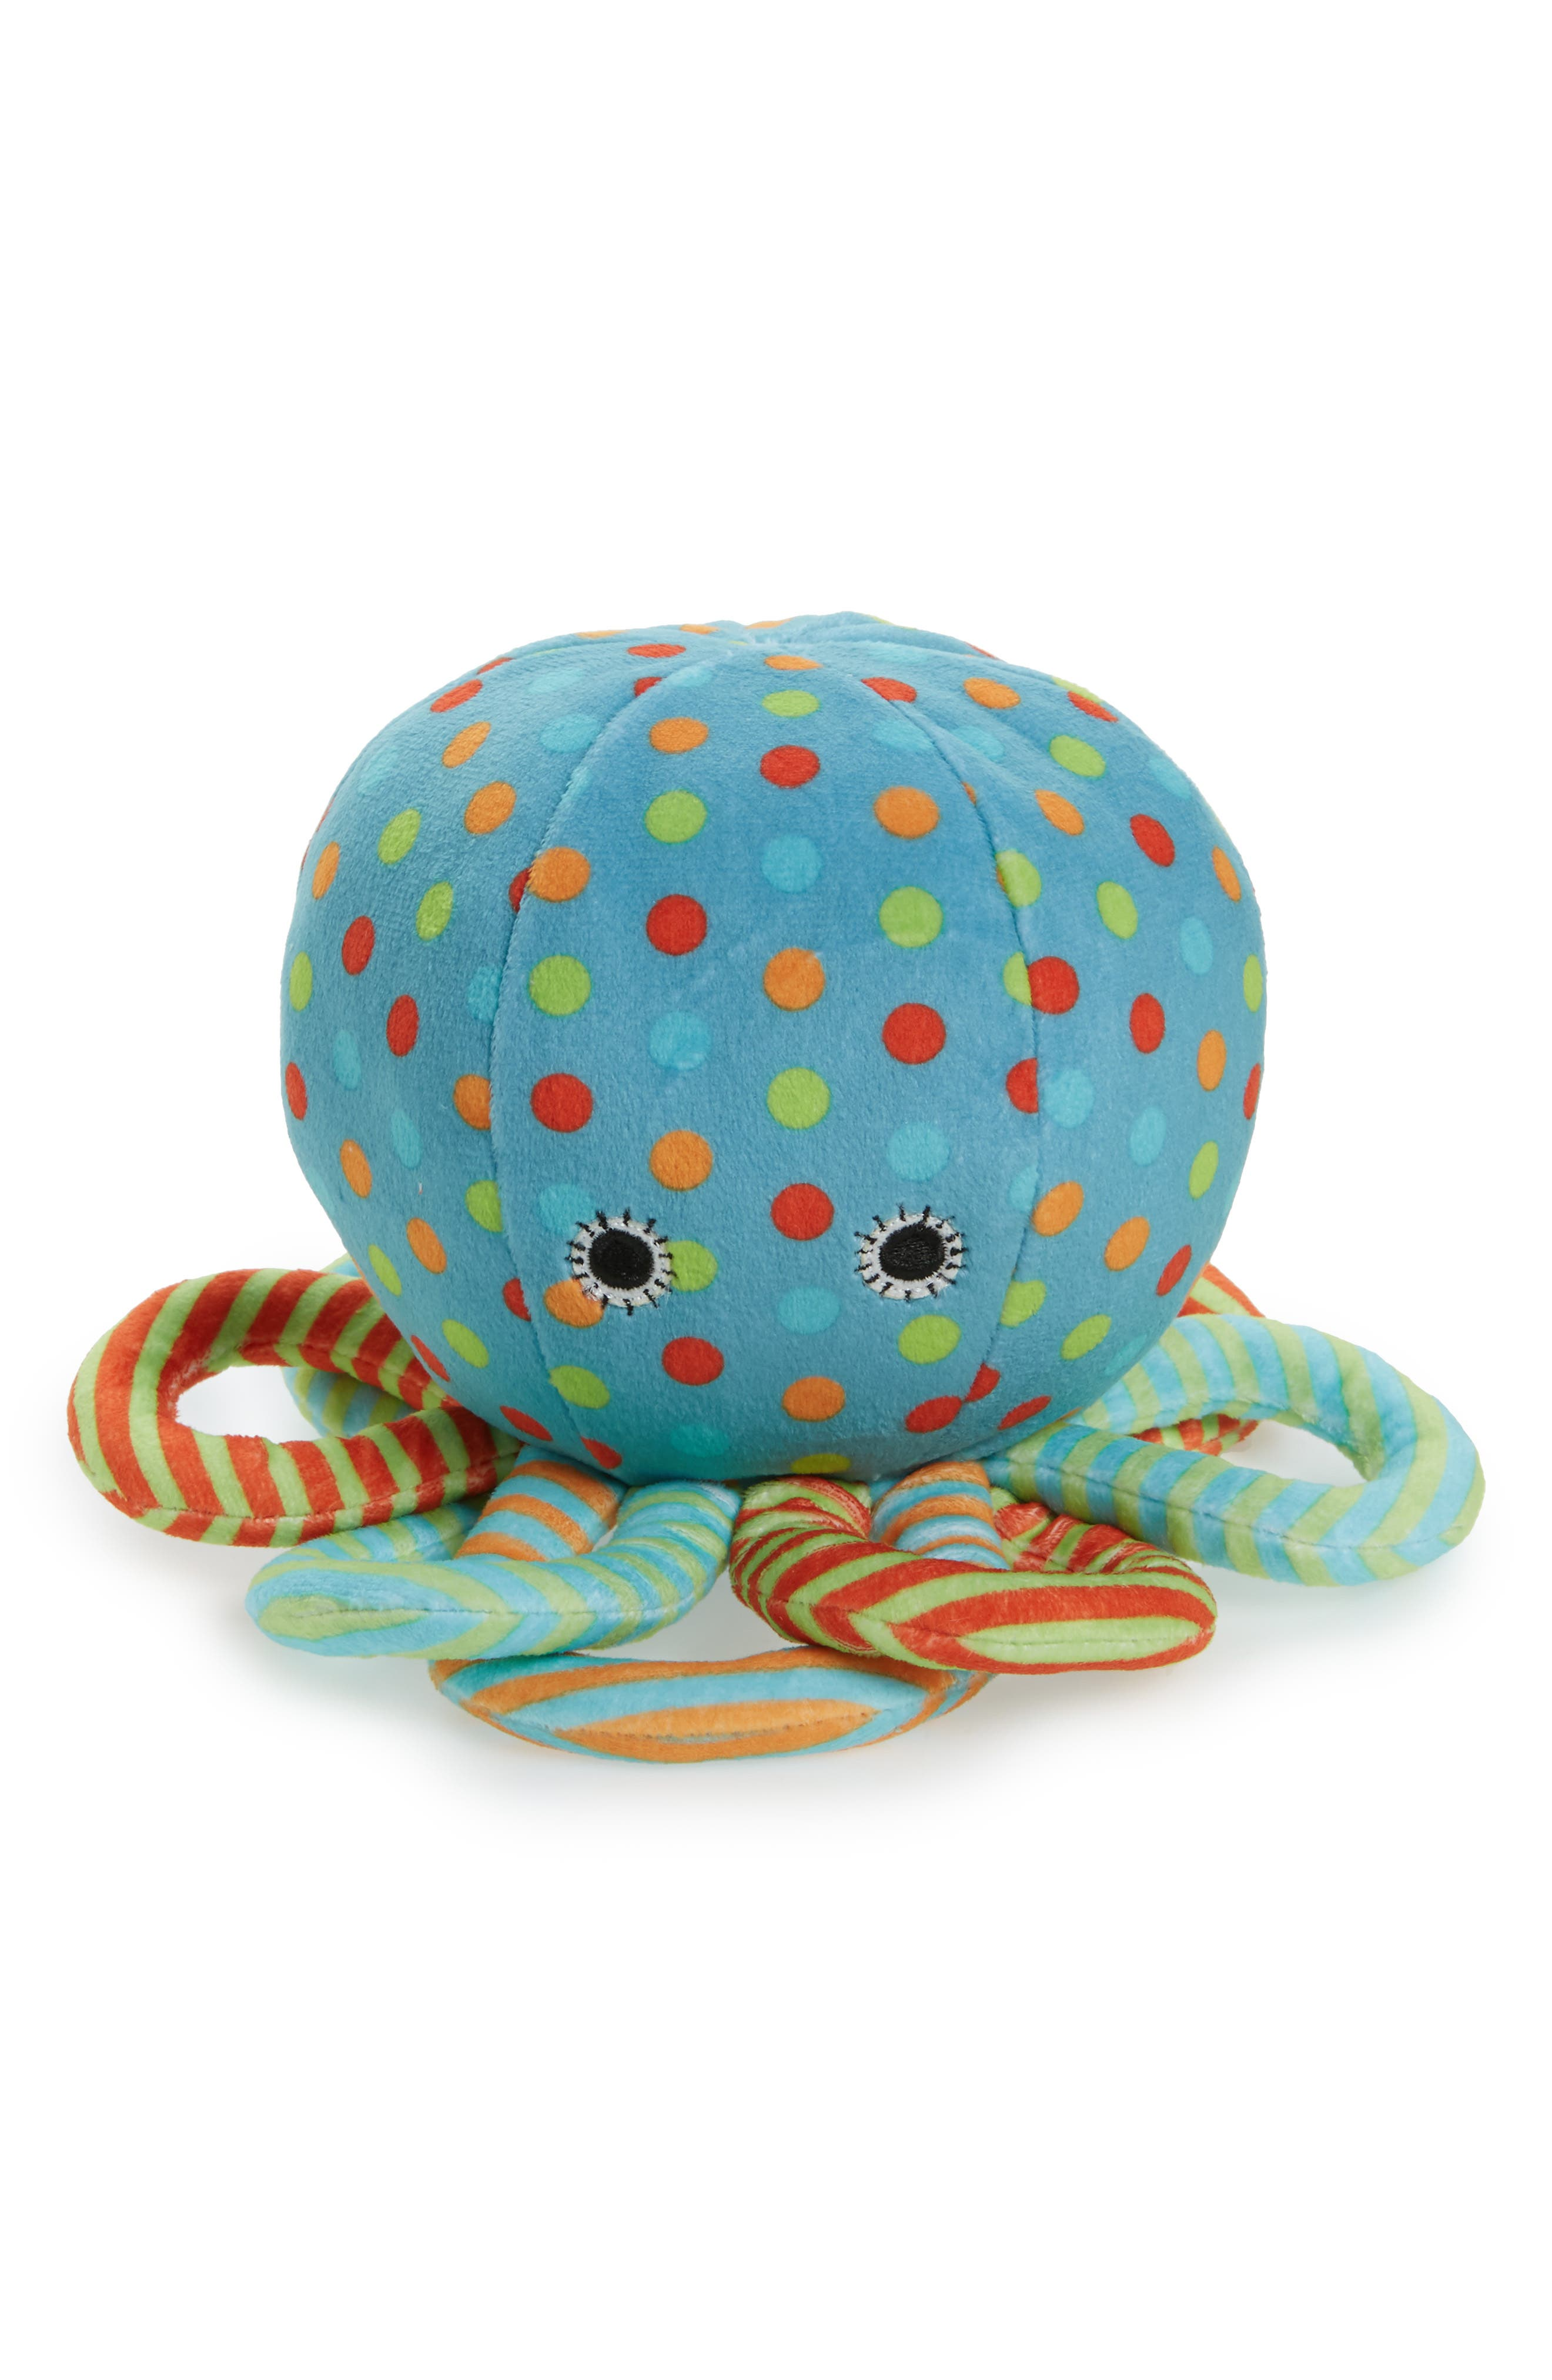 Jellycat Octopus Chime